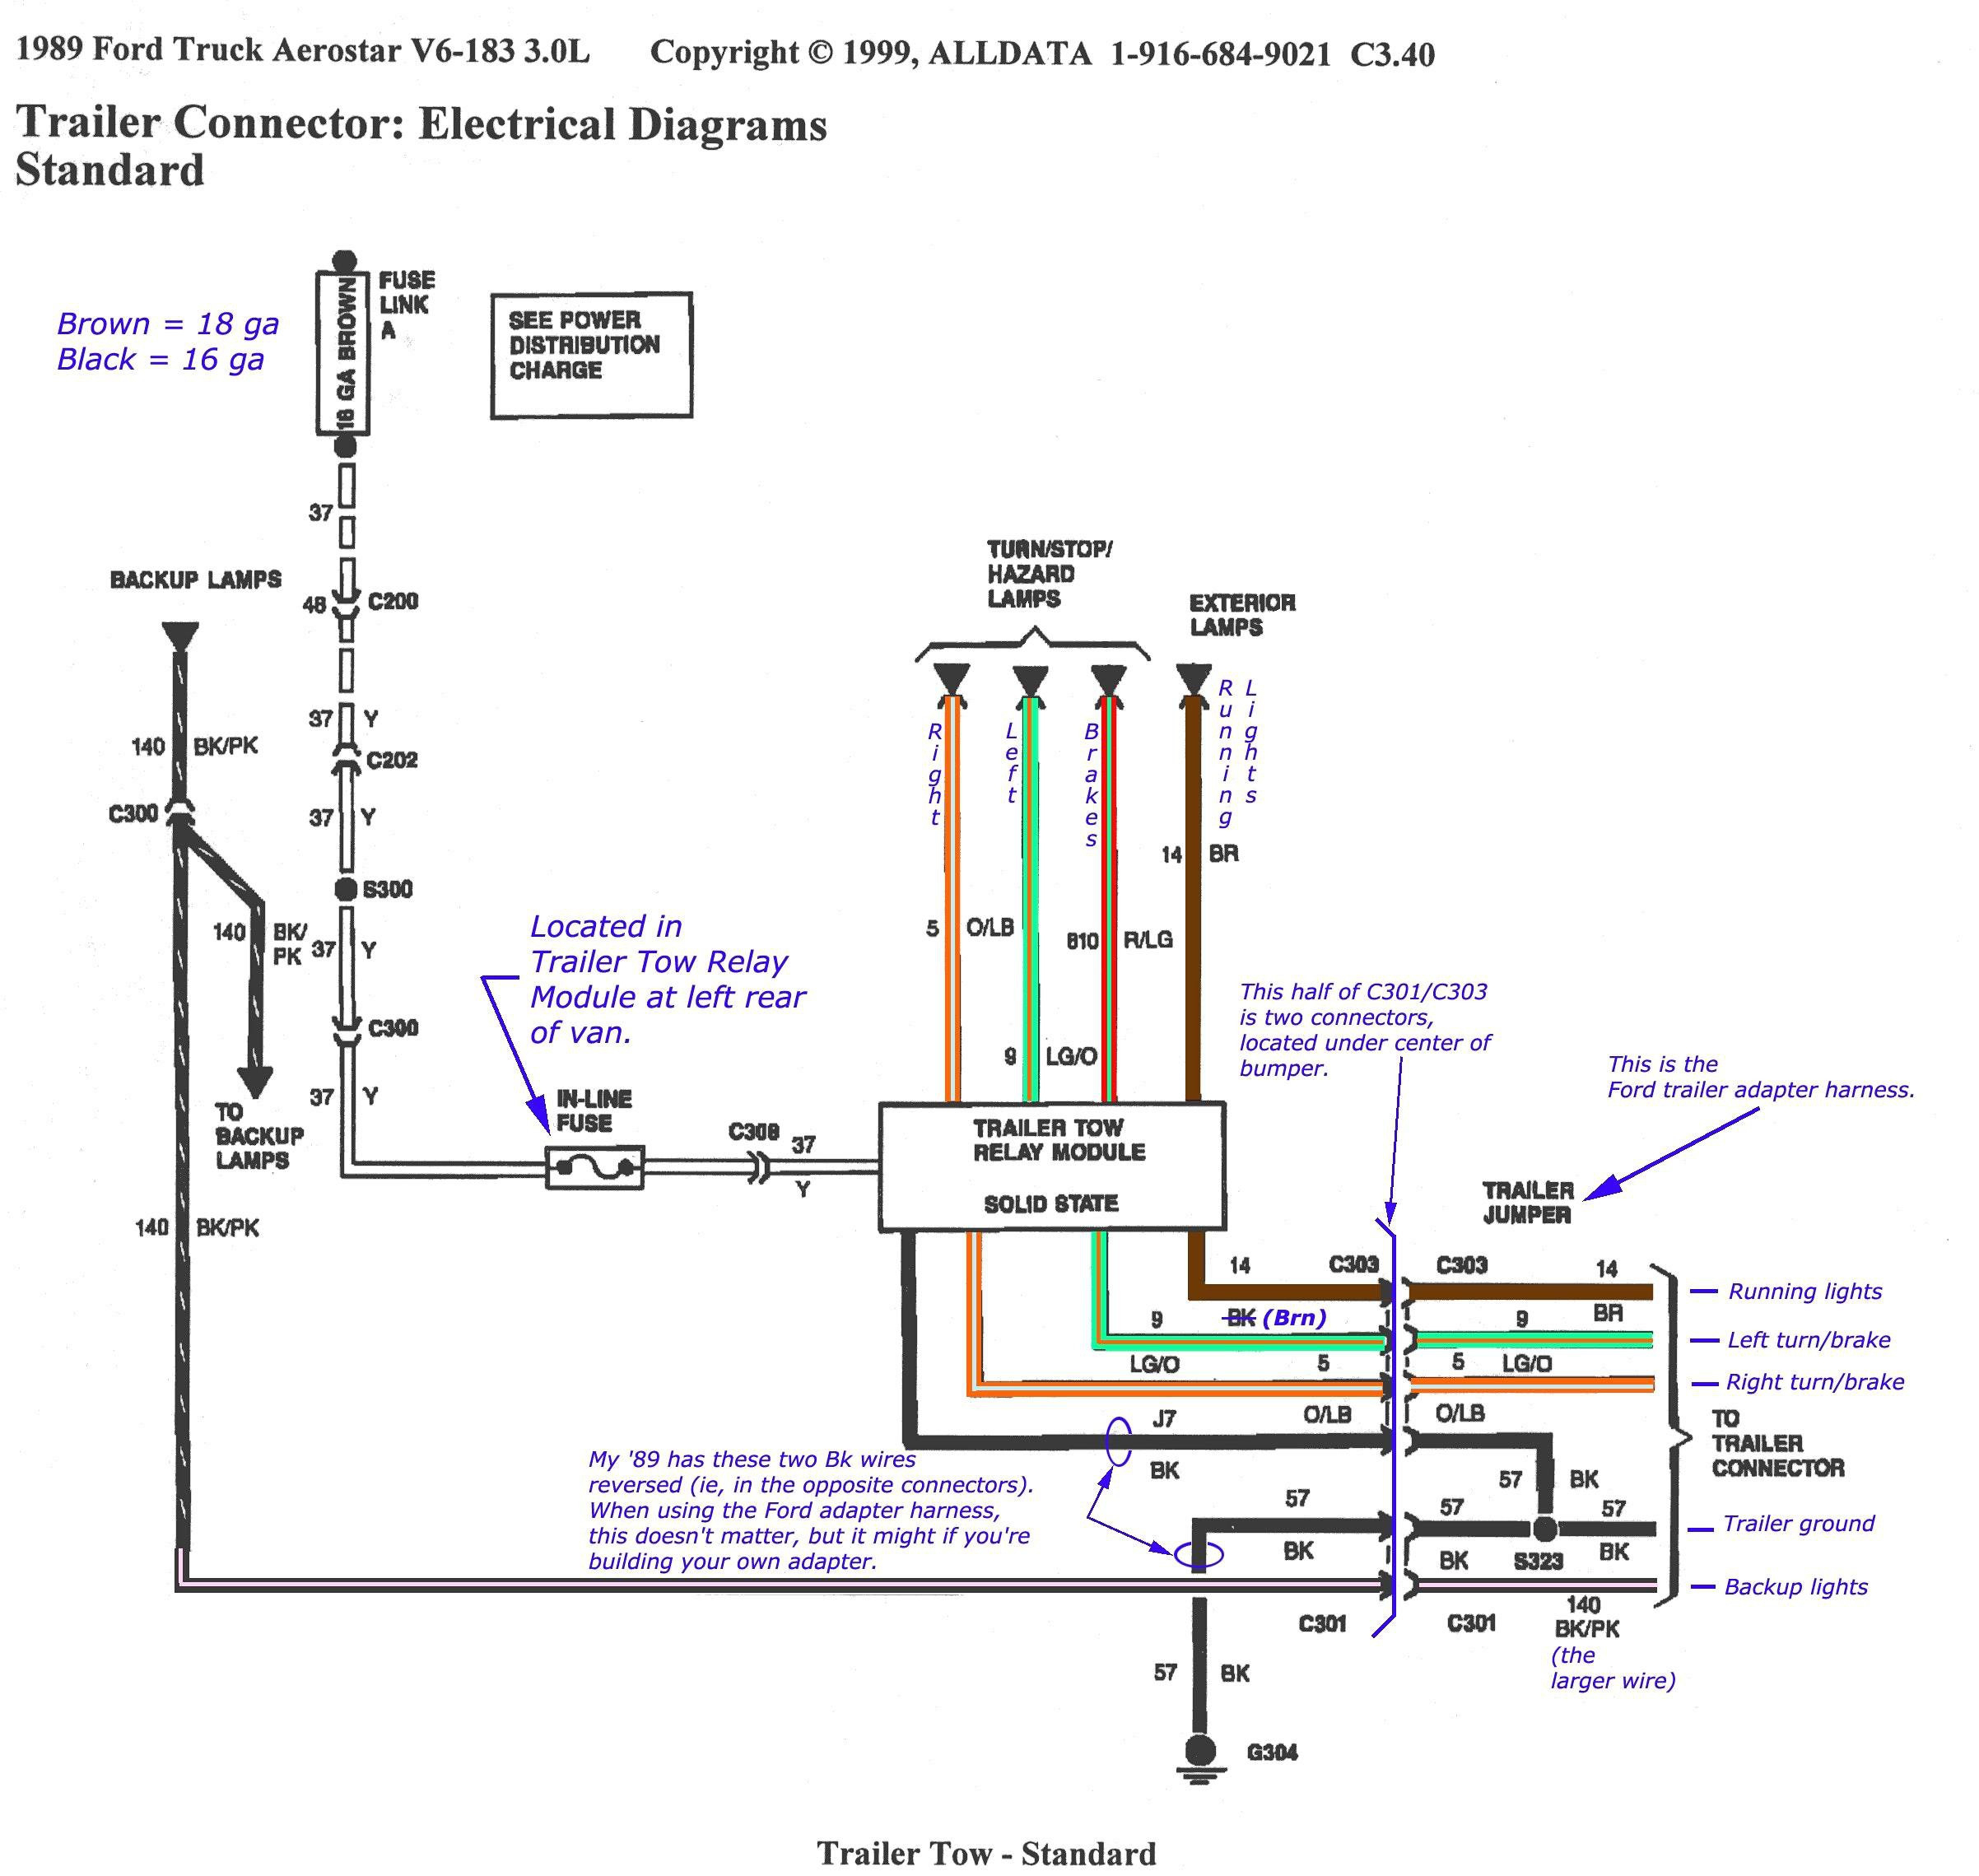 diagram] 1999 ford f 150 trailer connector wiring diagram full version hd  quality wiring diagram - jdiagram.democraticiperilno.it  diagram database - democraticiperilno.it